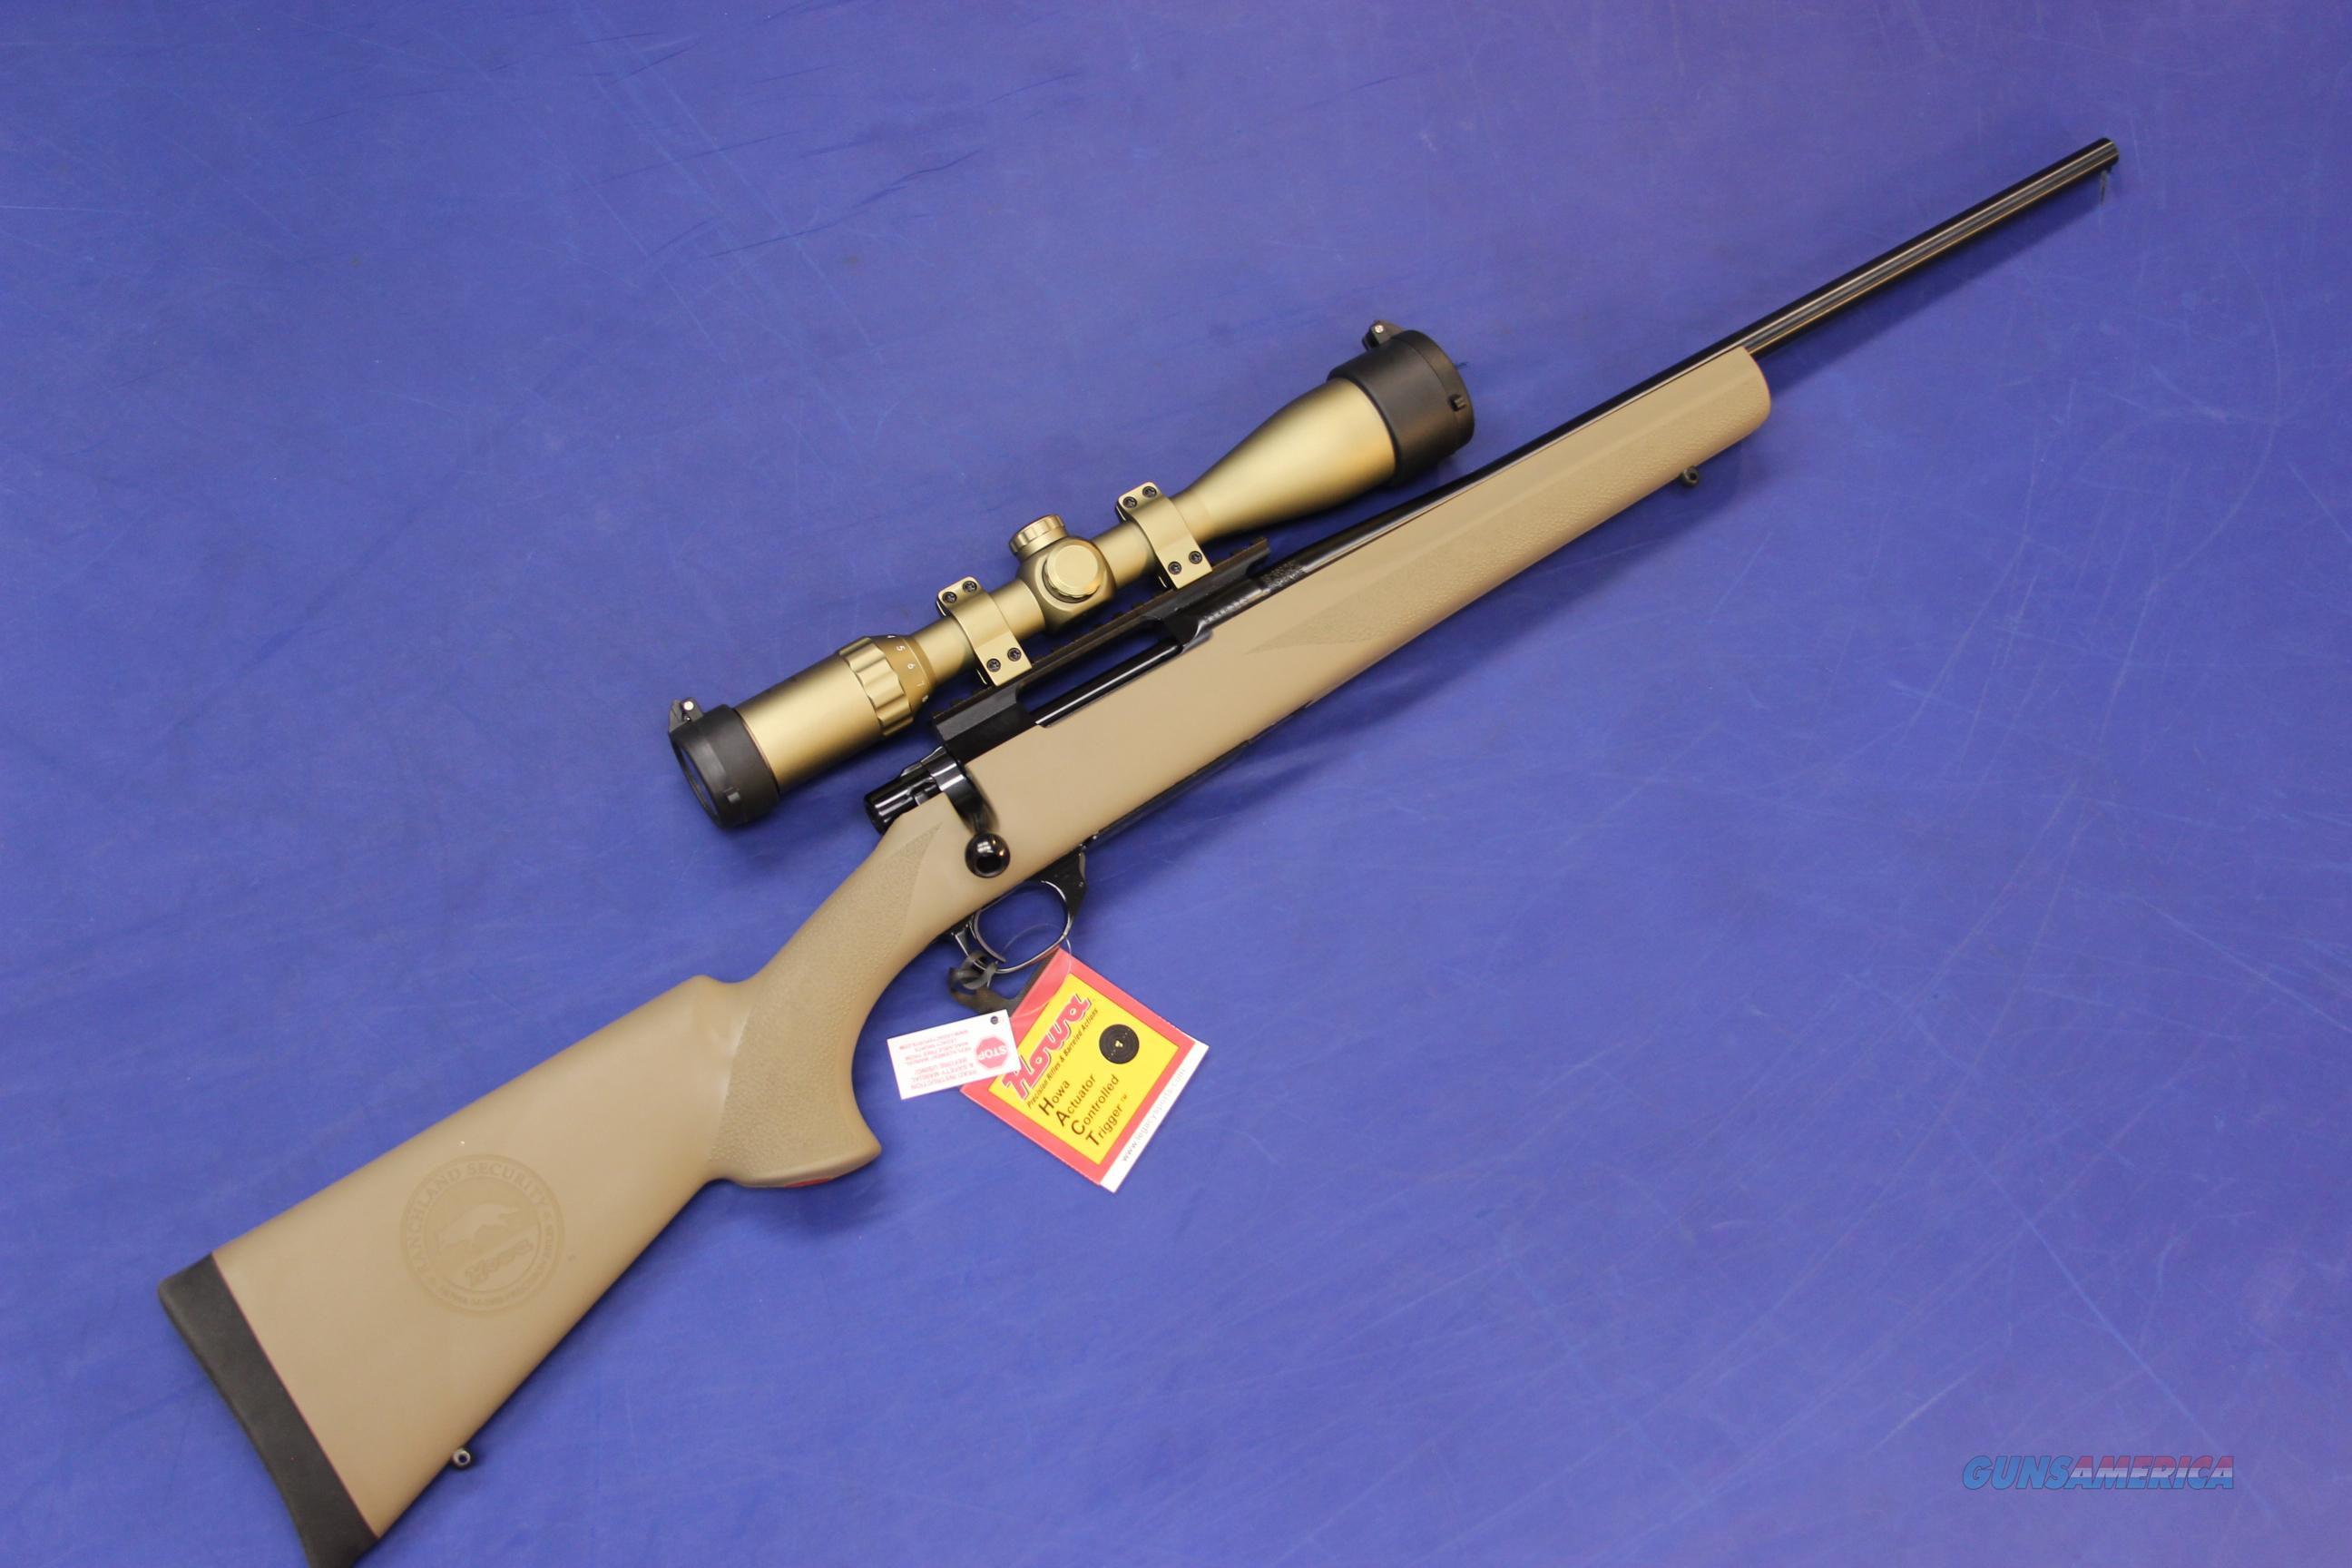 HOWA 1500 RANCHLAND SAND COMPACT PACKAGE .22-250 REM - NEW!  Guns > Rifles > Howa Rifles